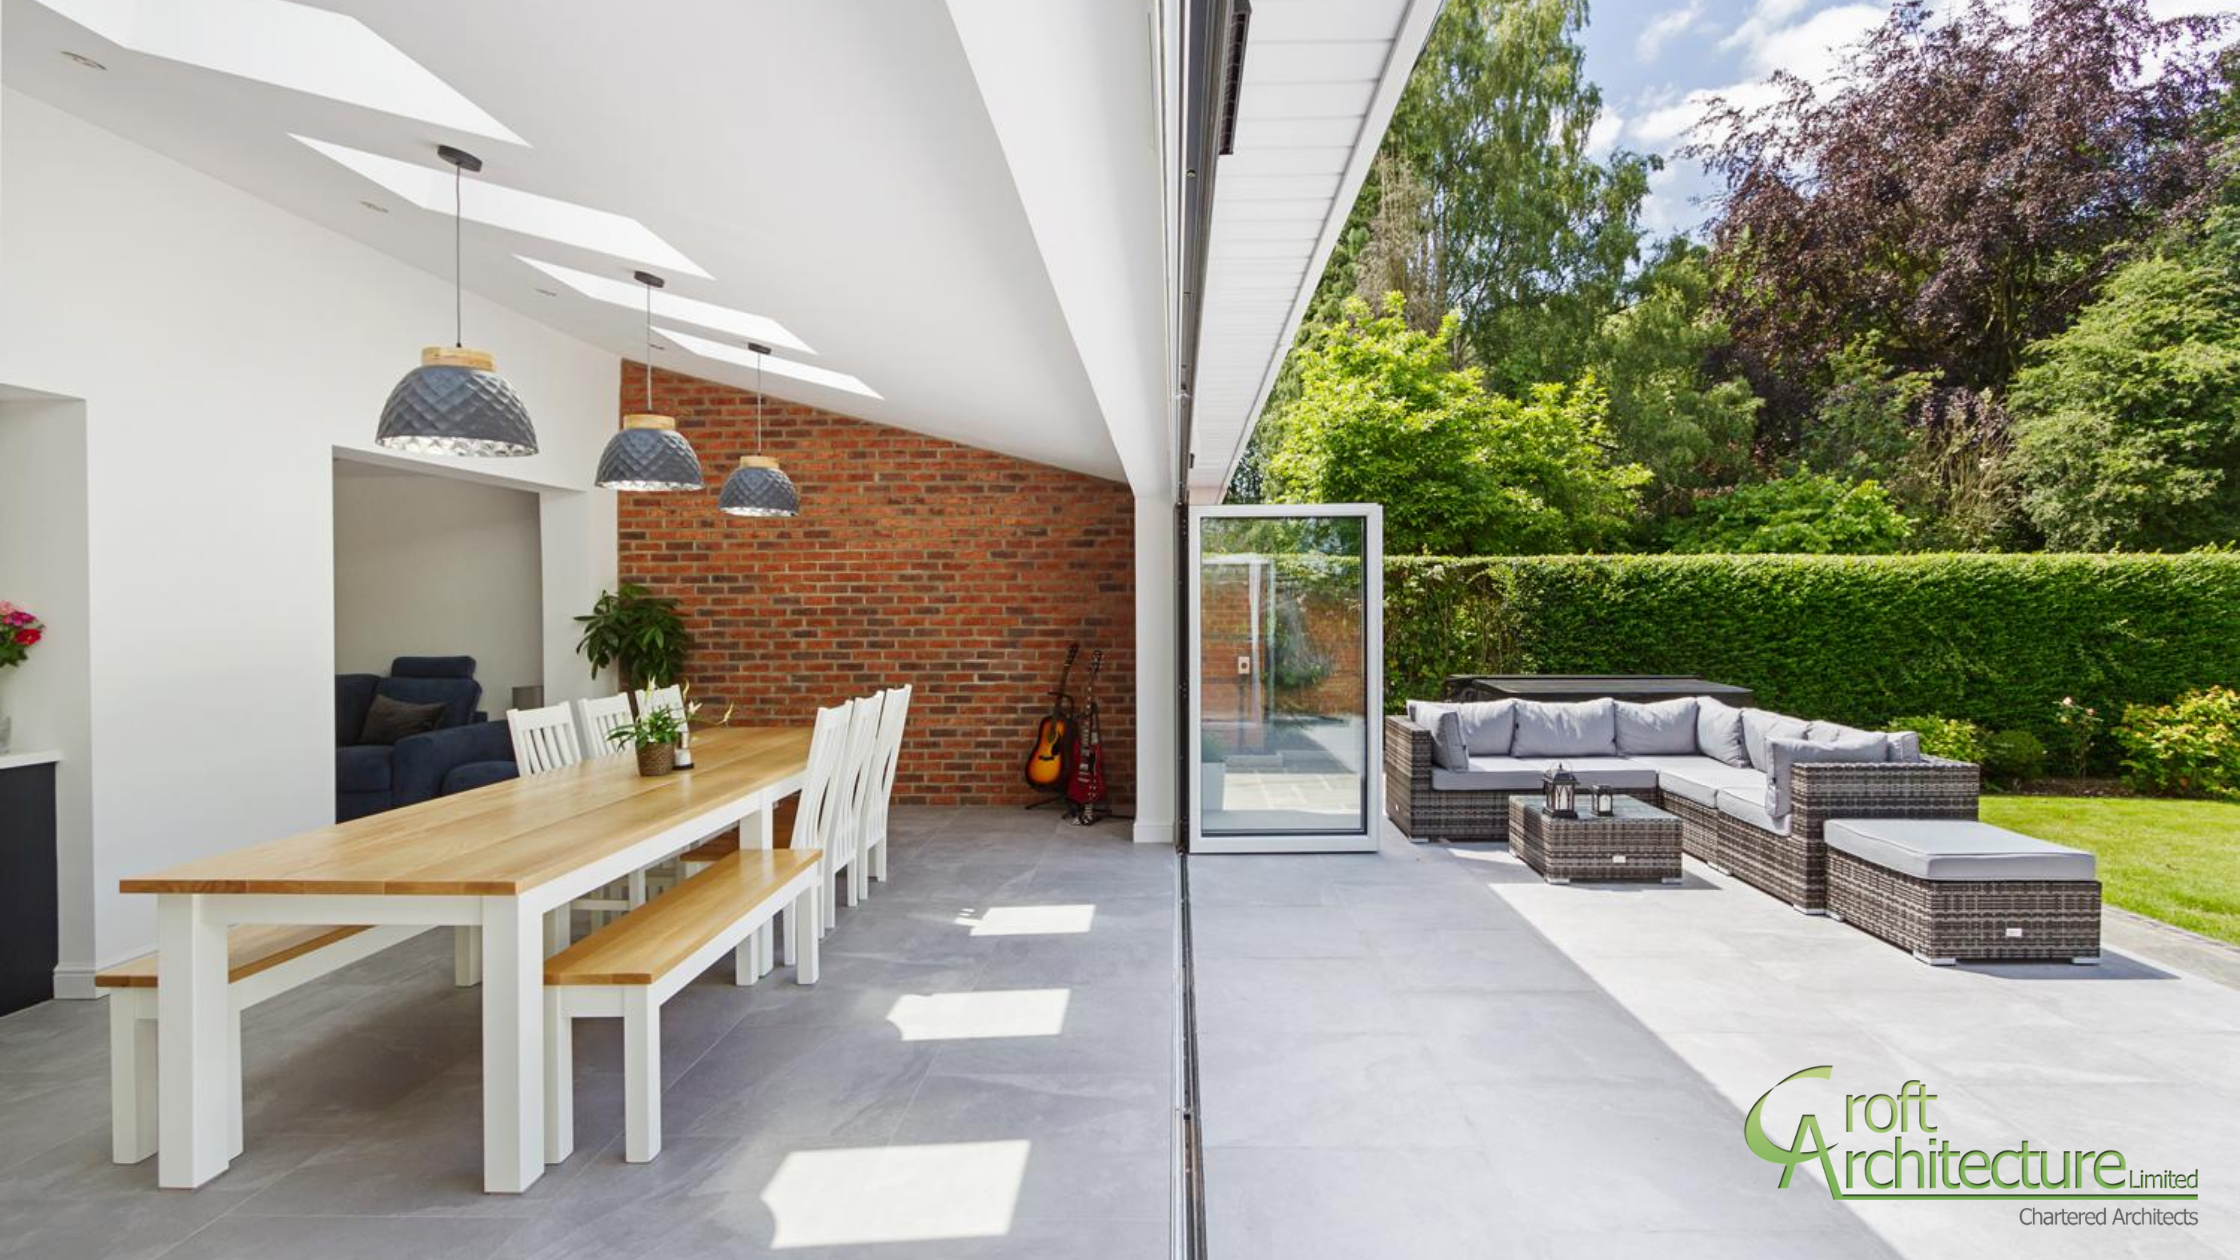 Croft Architecture add value and save you money